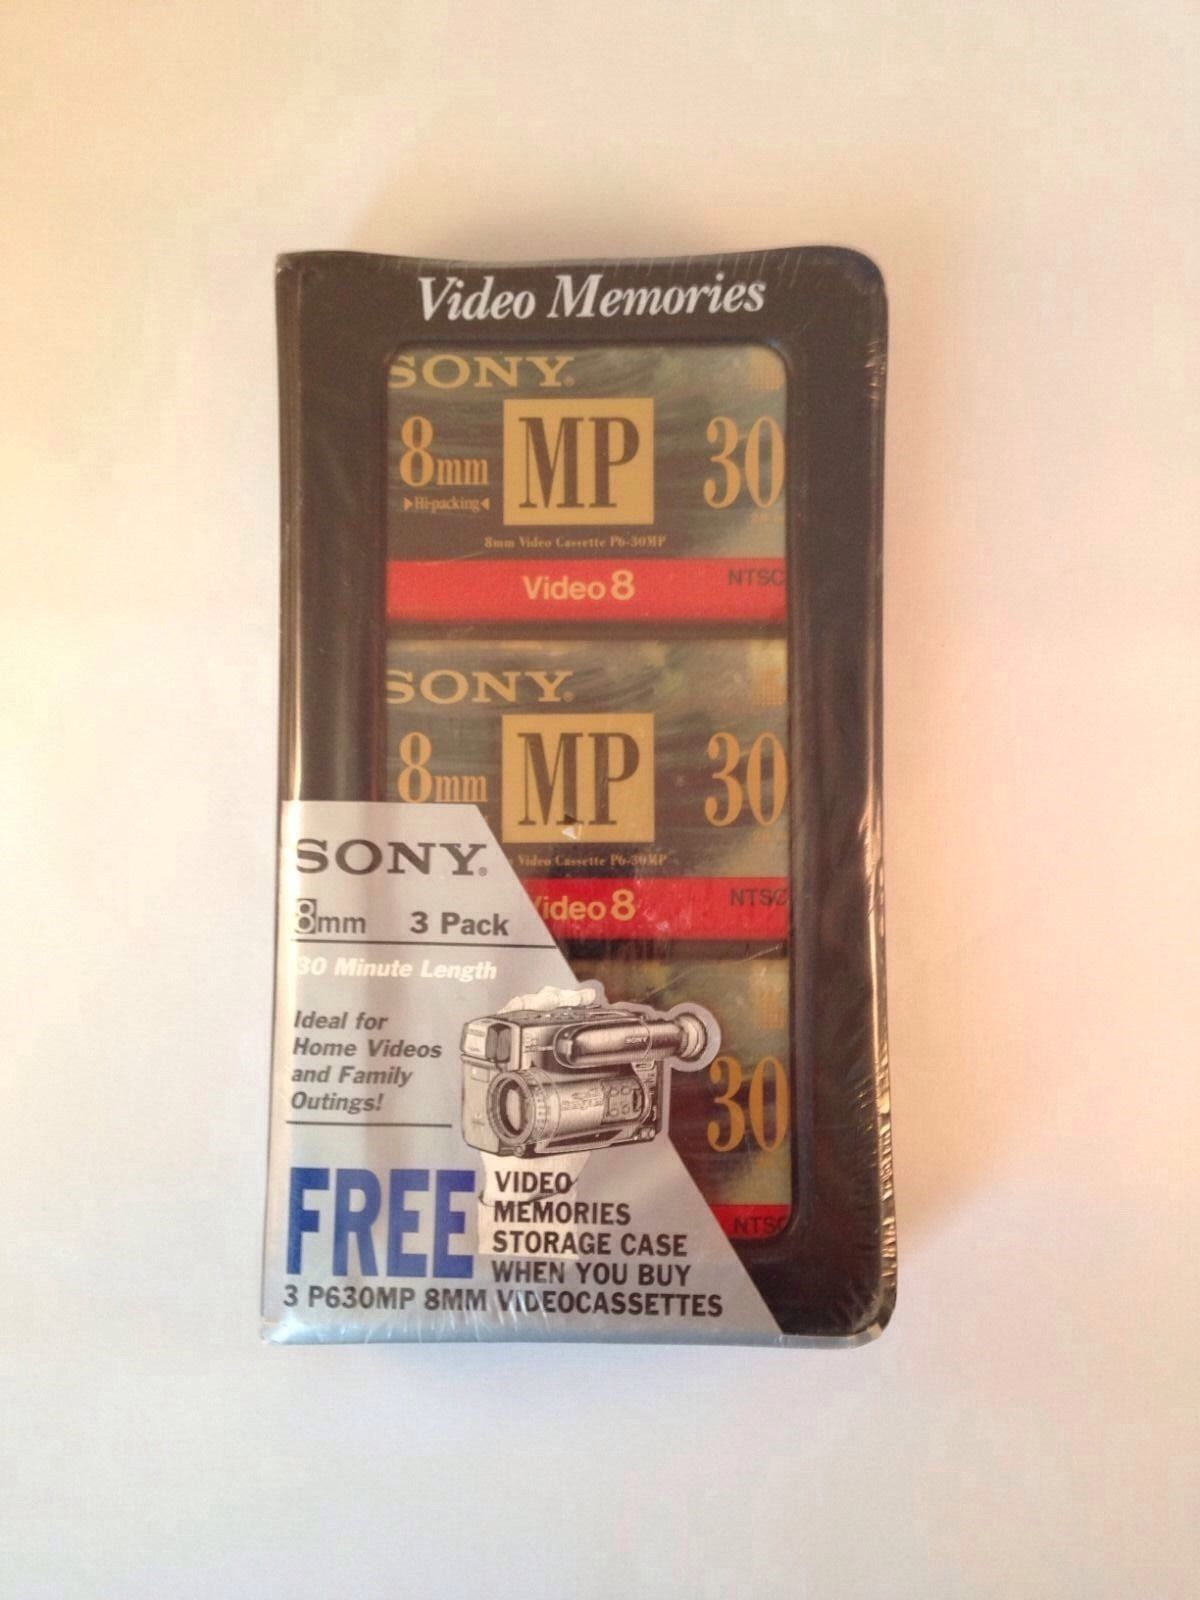 3 SONY P630MP METAL 8MM VIDEO CASSETTES WITH VIDEO MEMORIES CASE